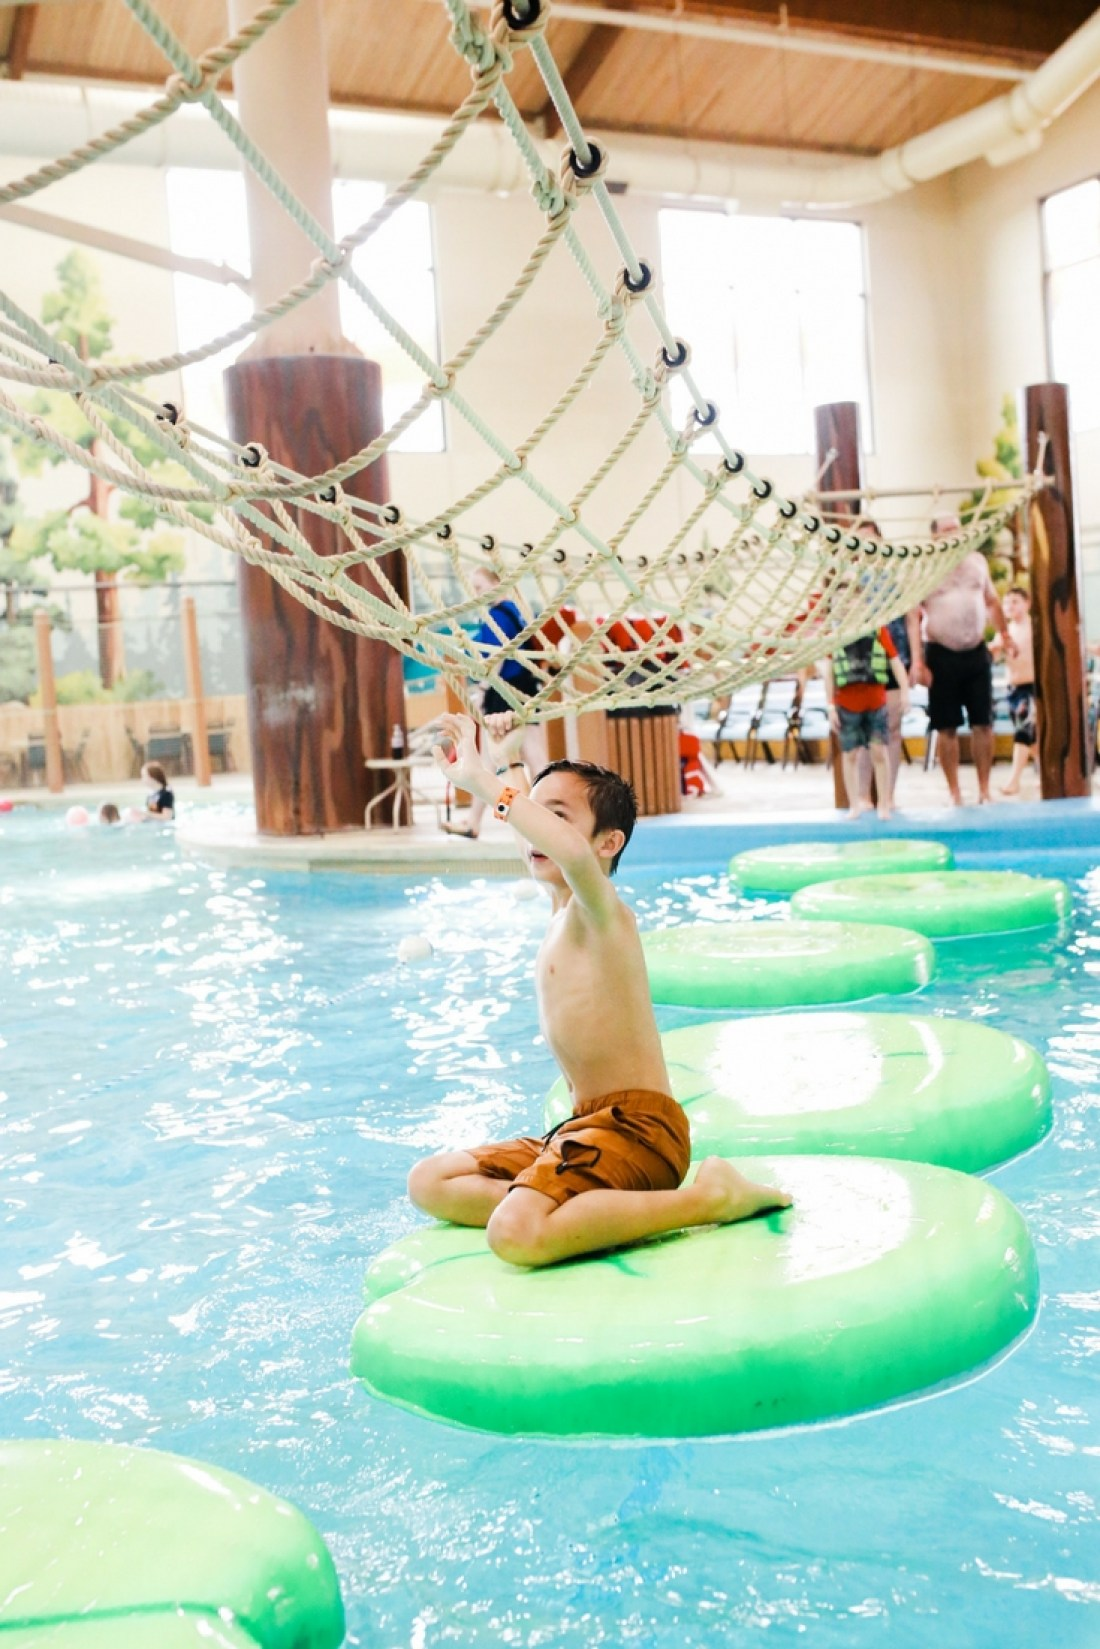 Review of the Great Wolf Lodge!